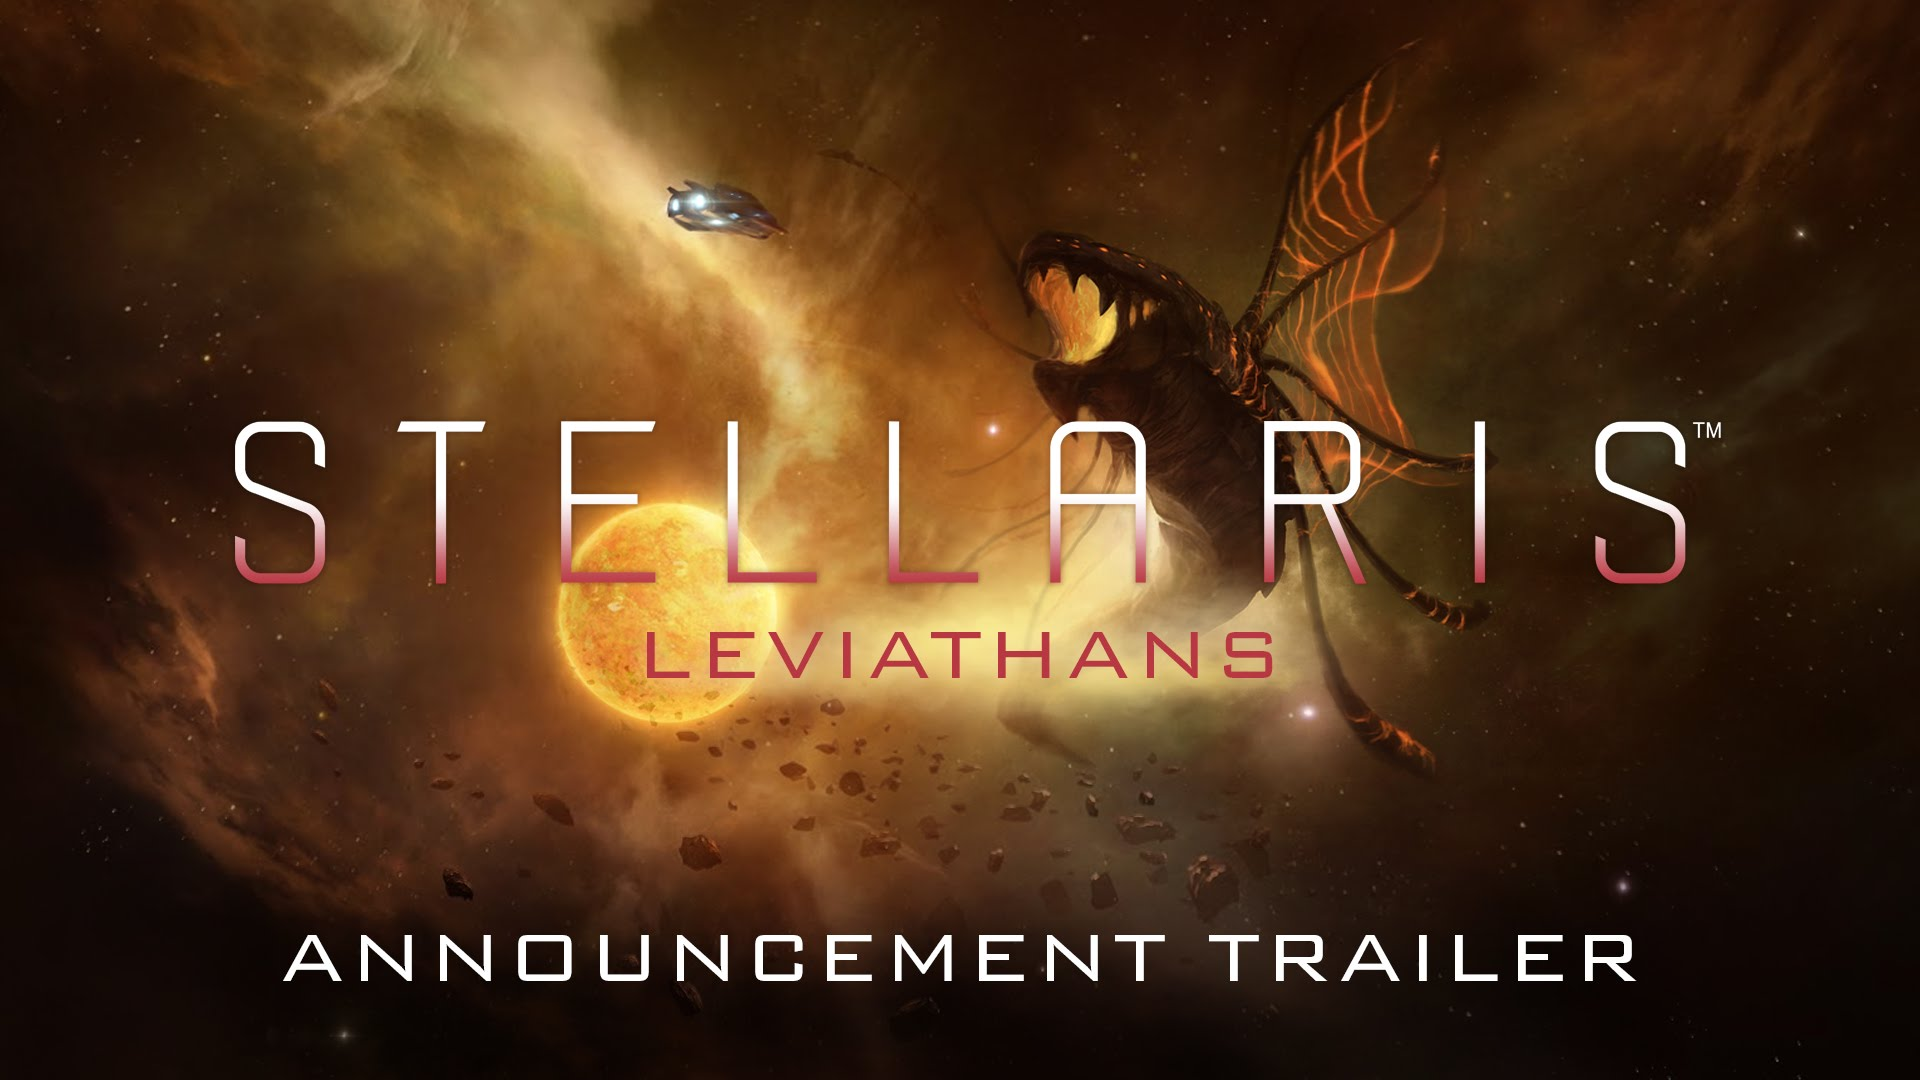 Stellaris: Leviathans Story Pack - Announcement Trailer